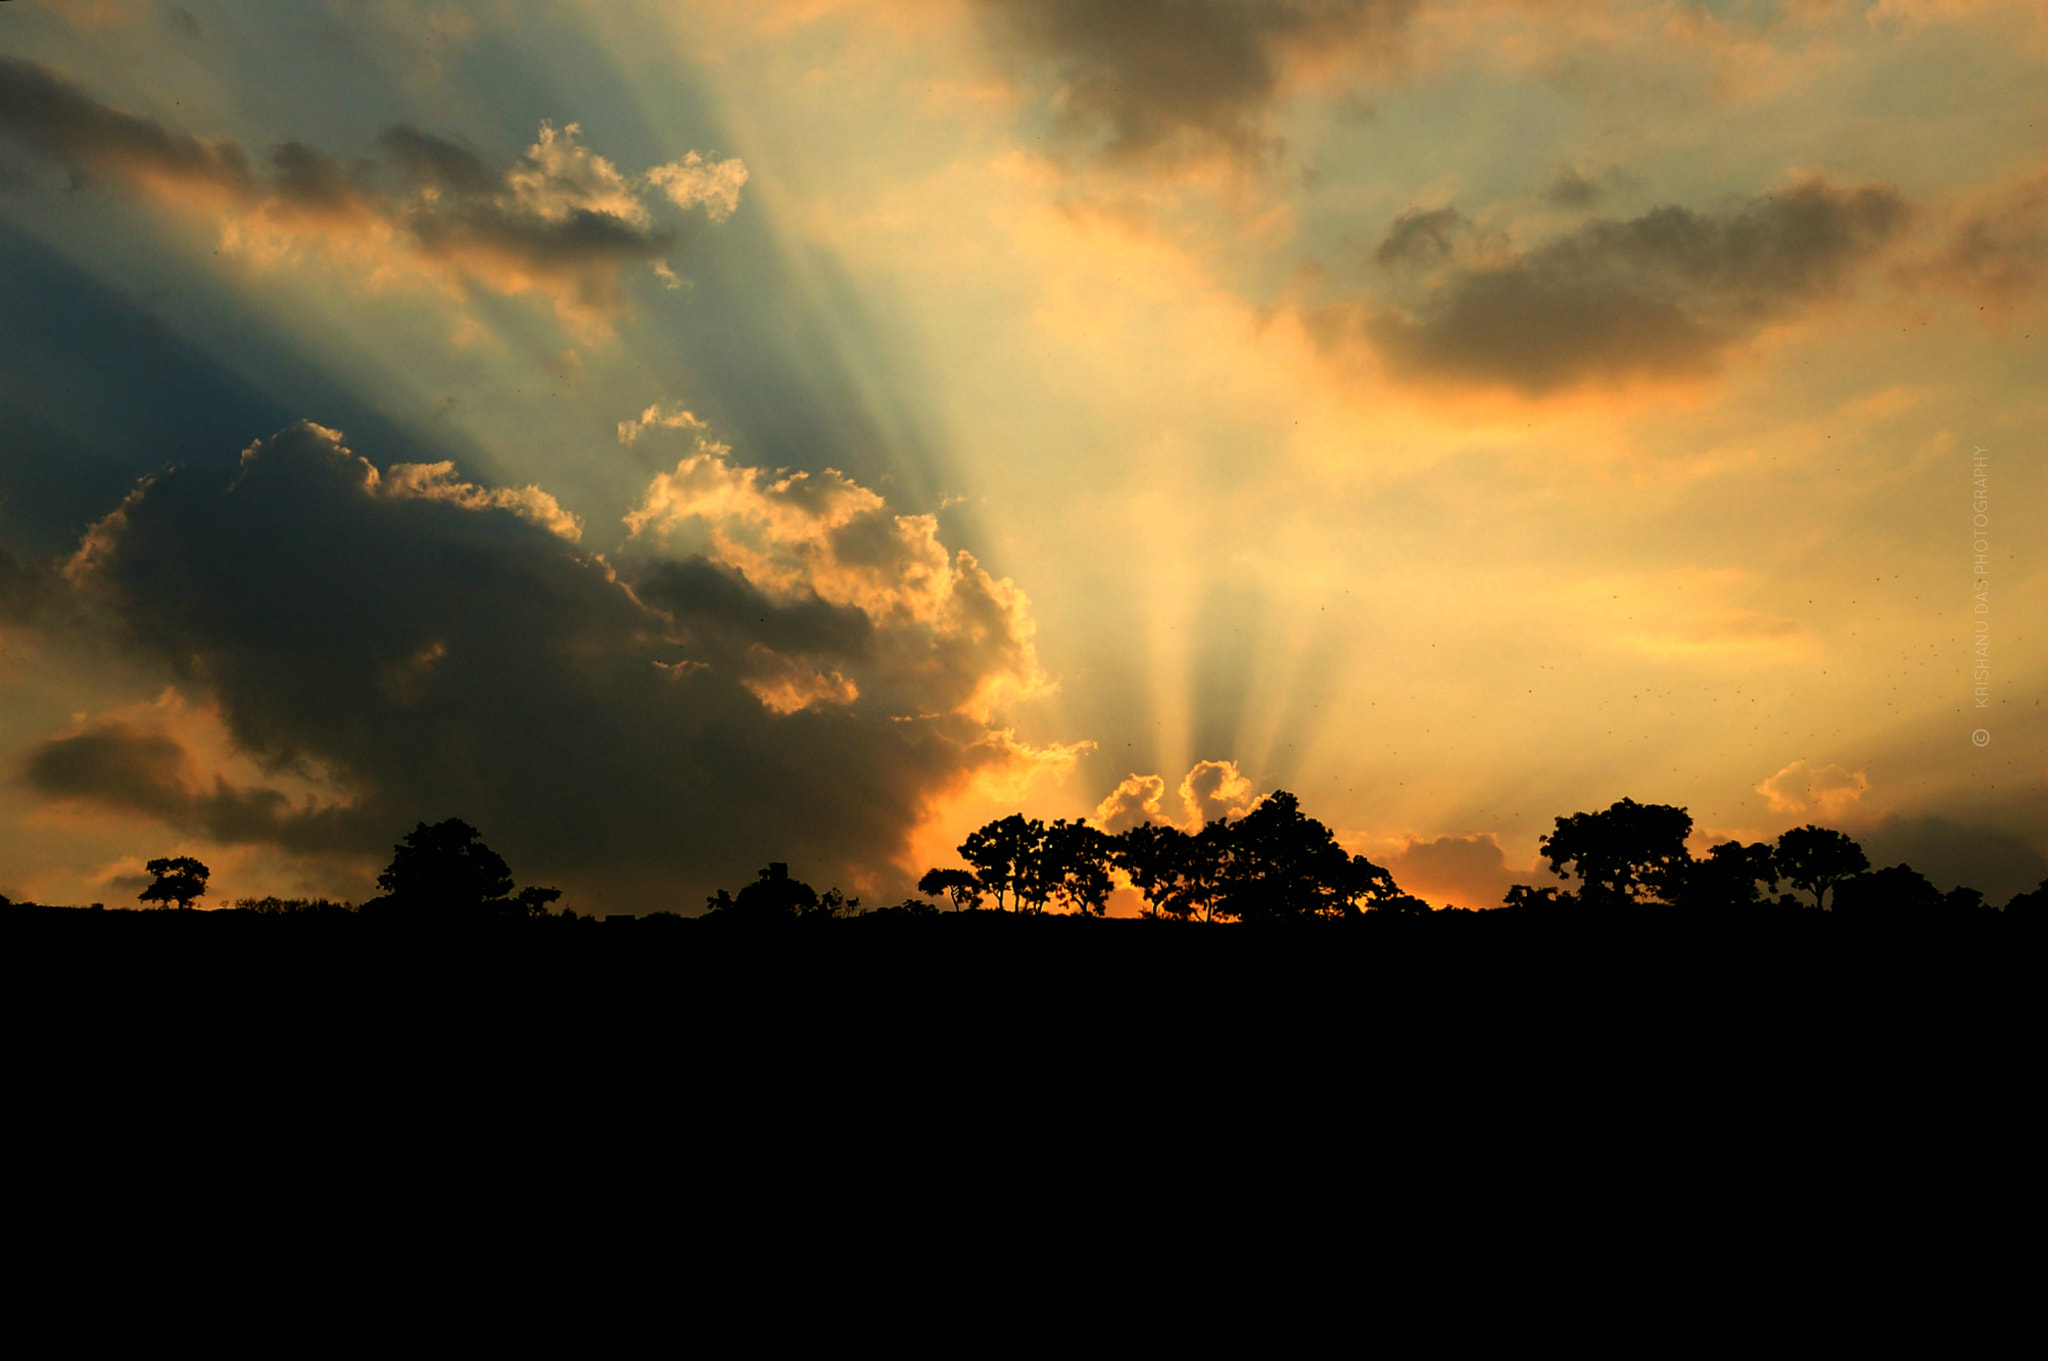 Photograph In search of light by Krishanu  Das on 500px